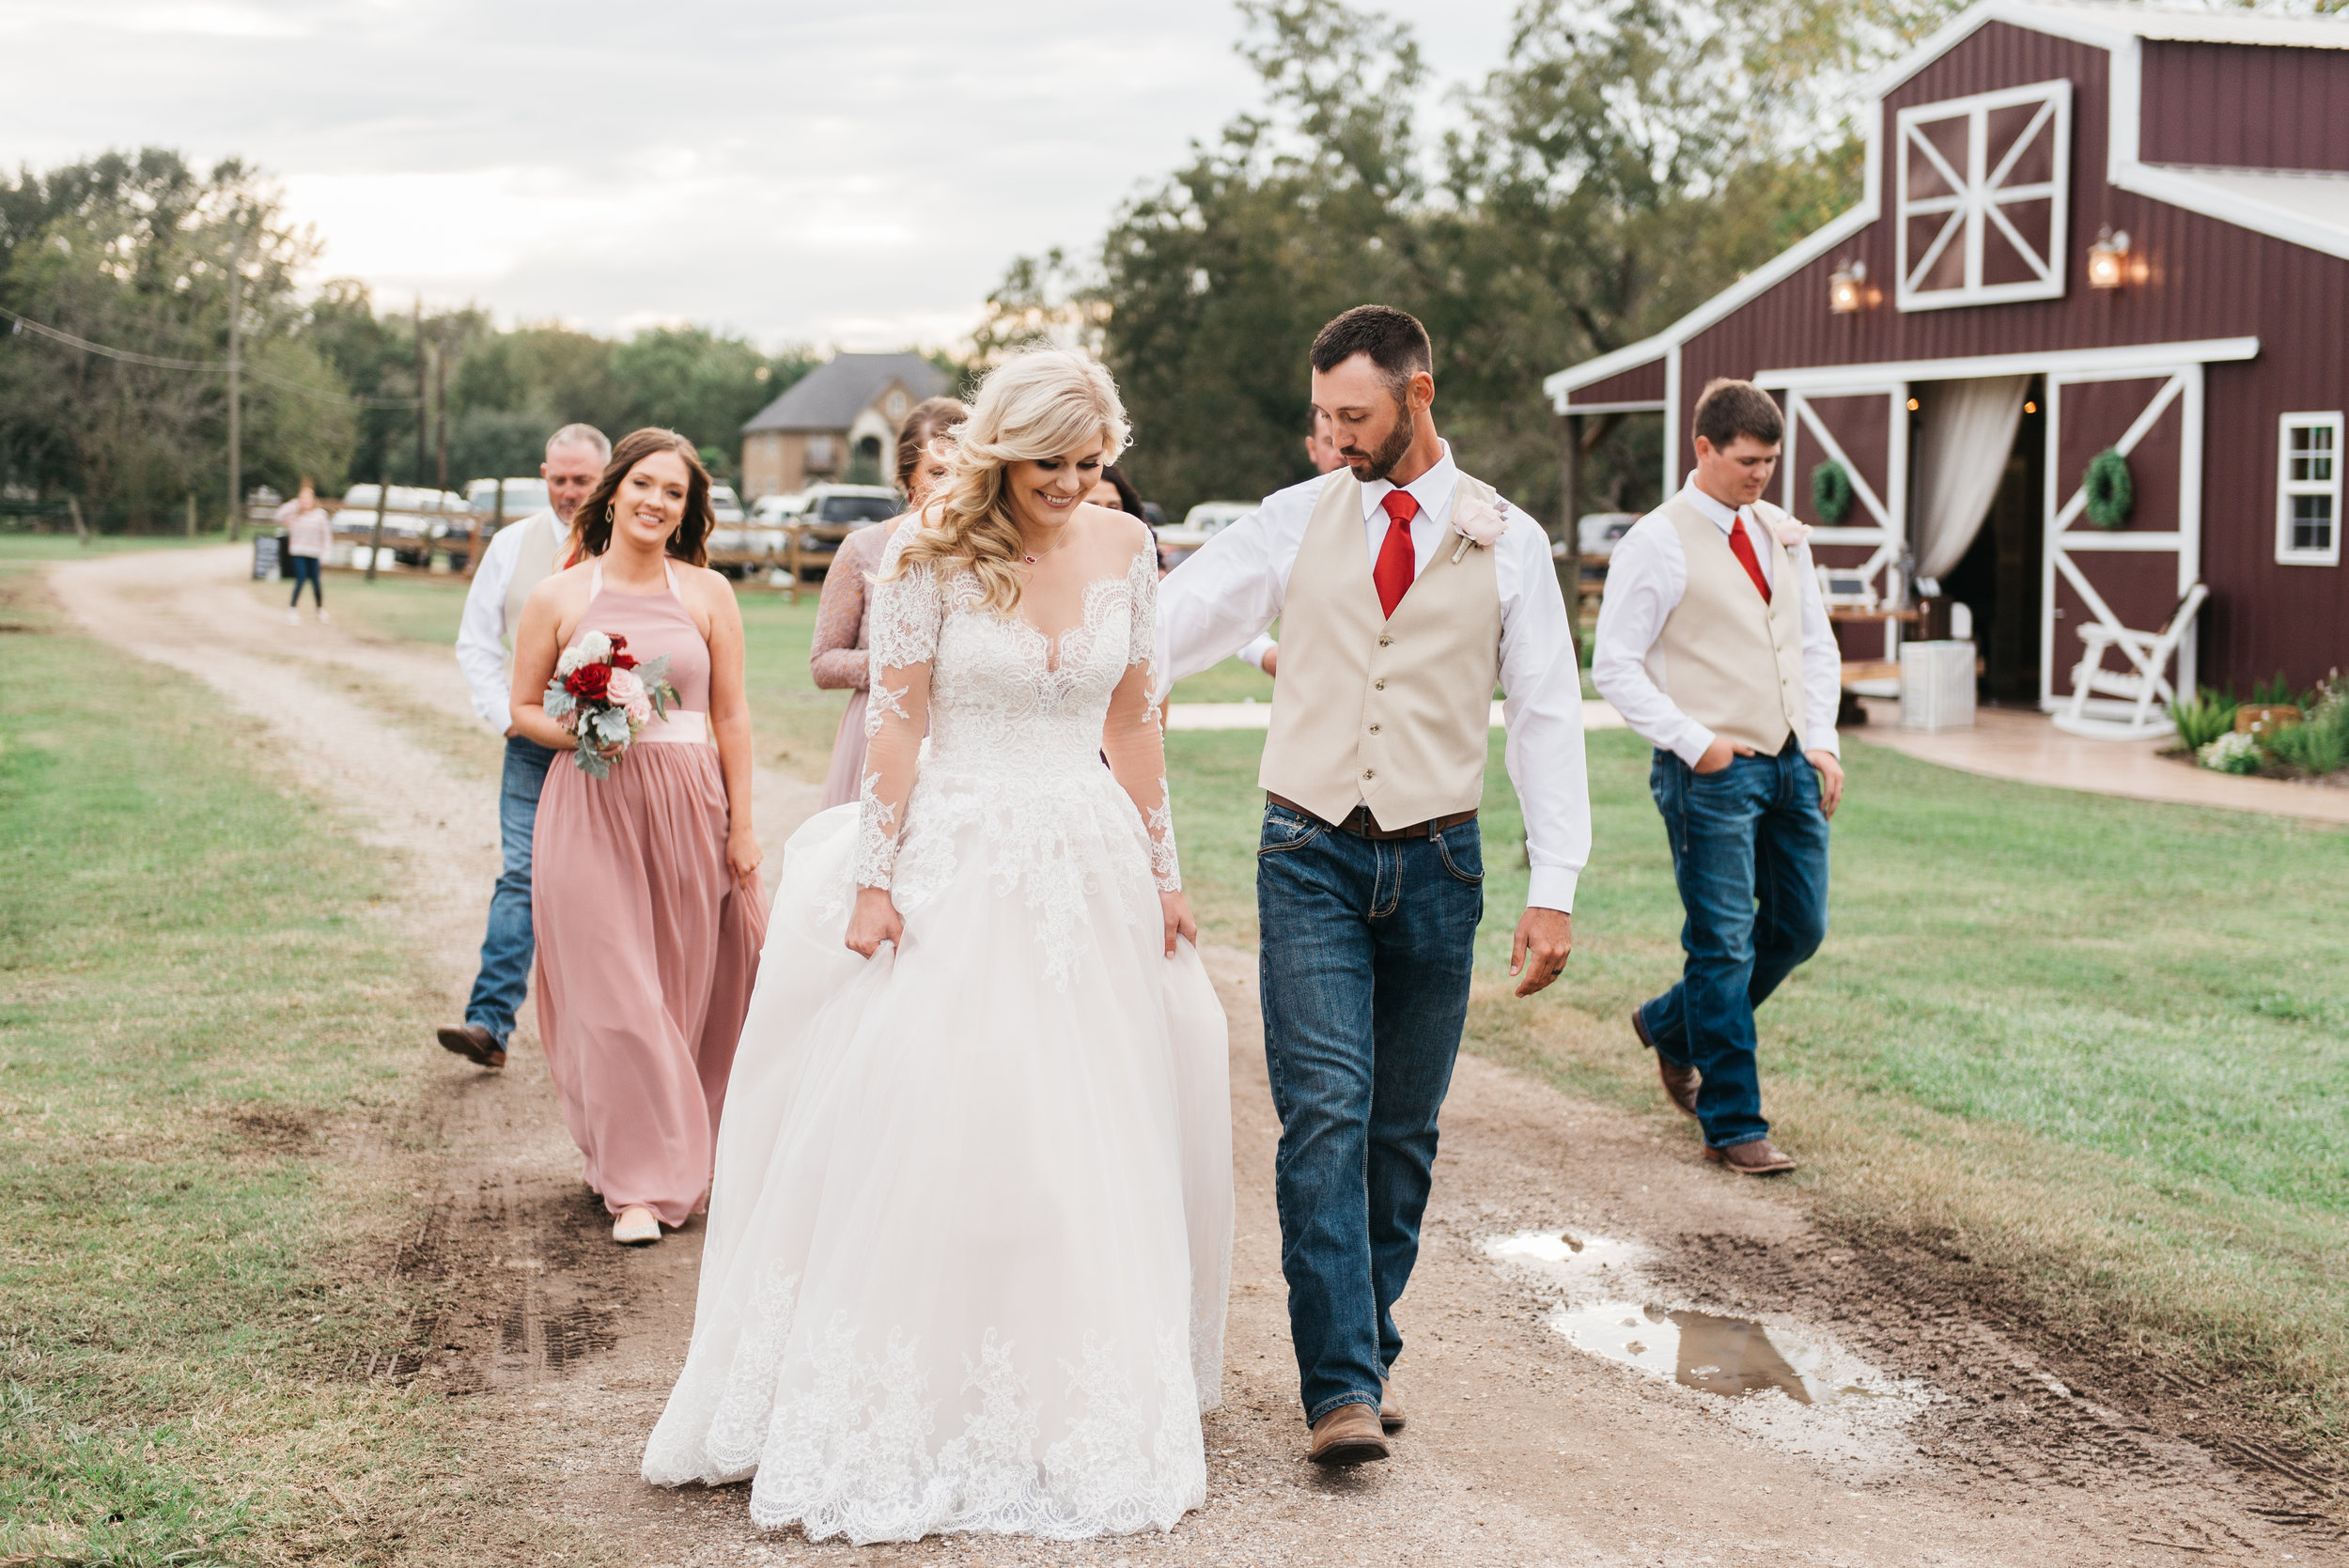 Rae Leigh Photography   More info on weddings at  The Barn at Holiday Acres